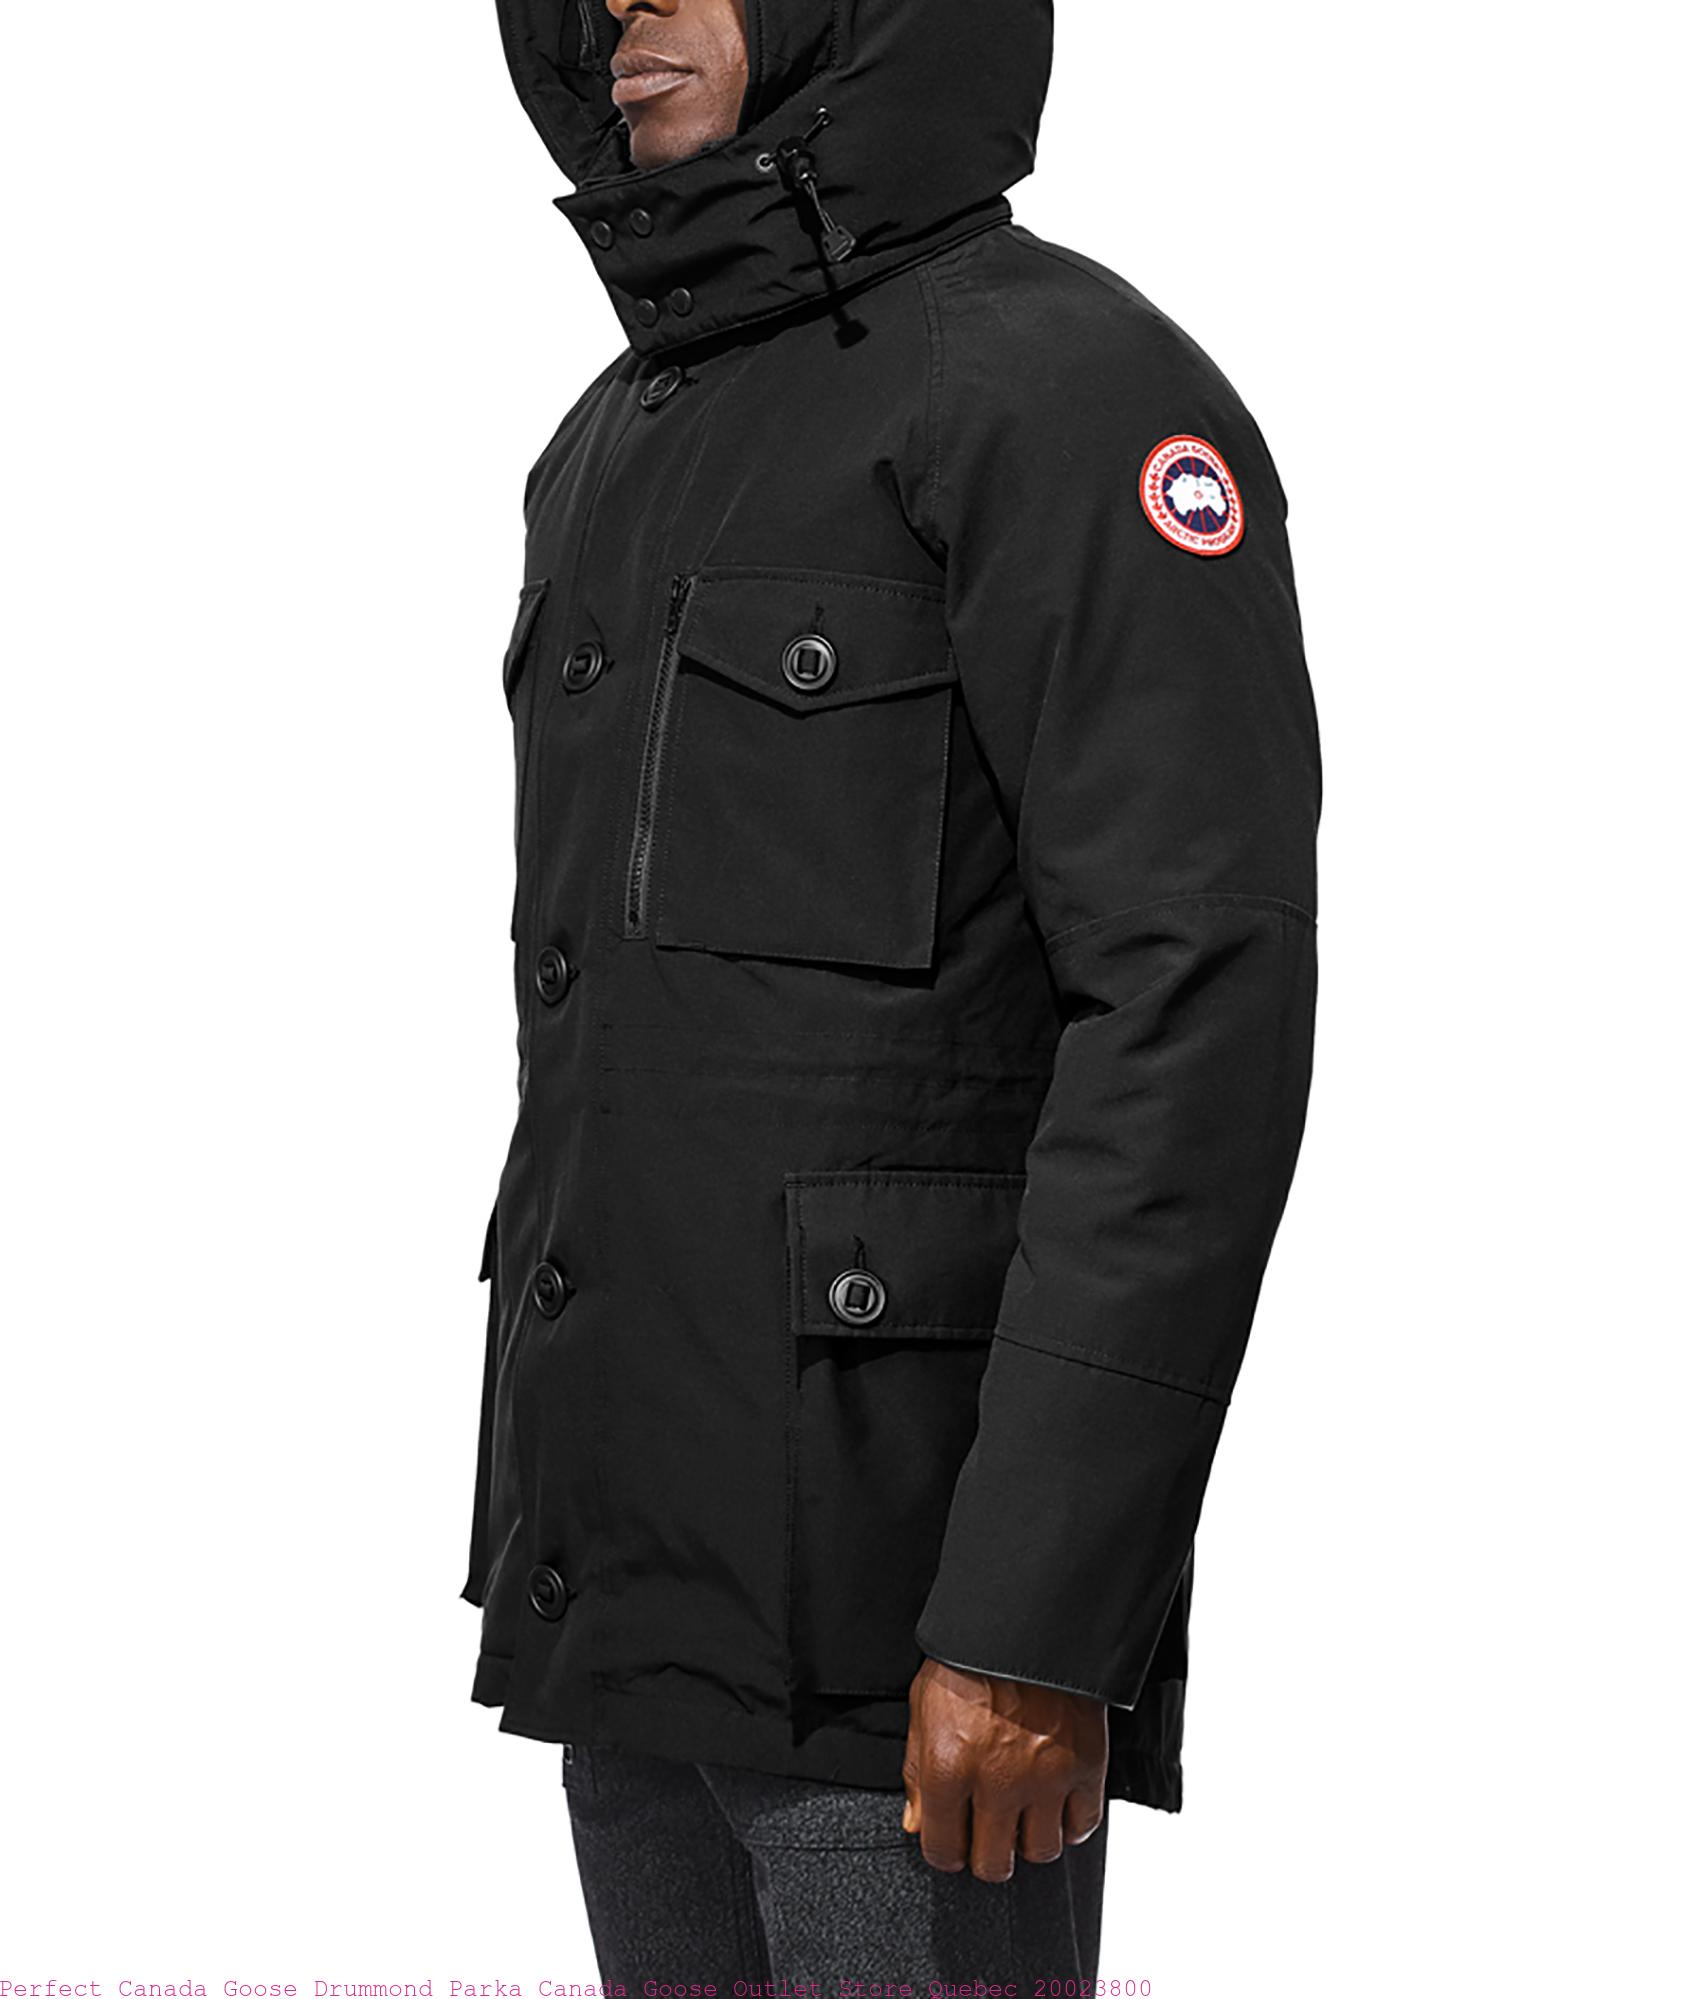 finest selection 2152e ac5a5 Perfect Canada Goose Drummond Parka Canada Goose Outlet Store Quebec  20023800